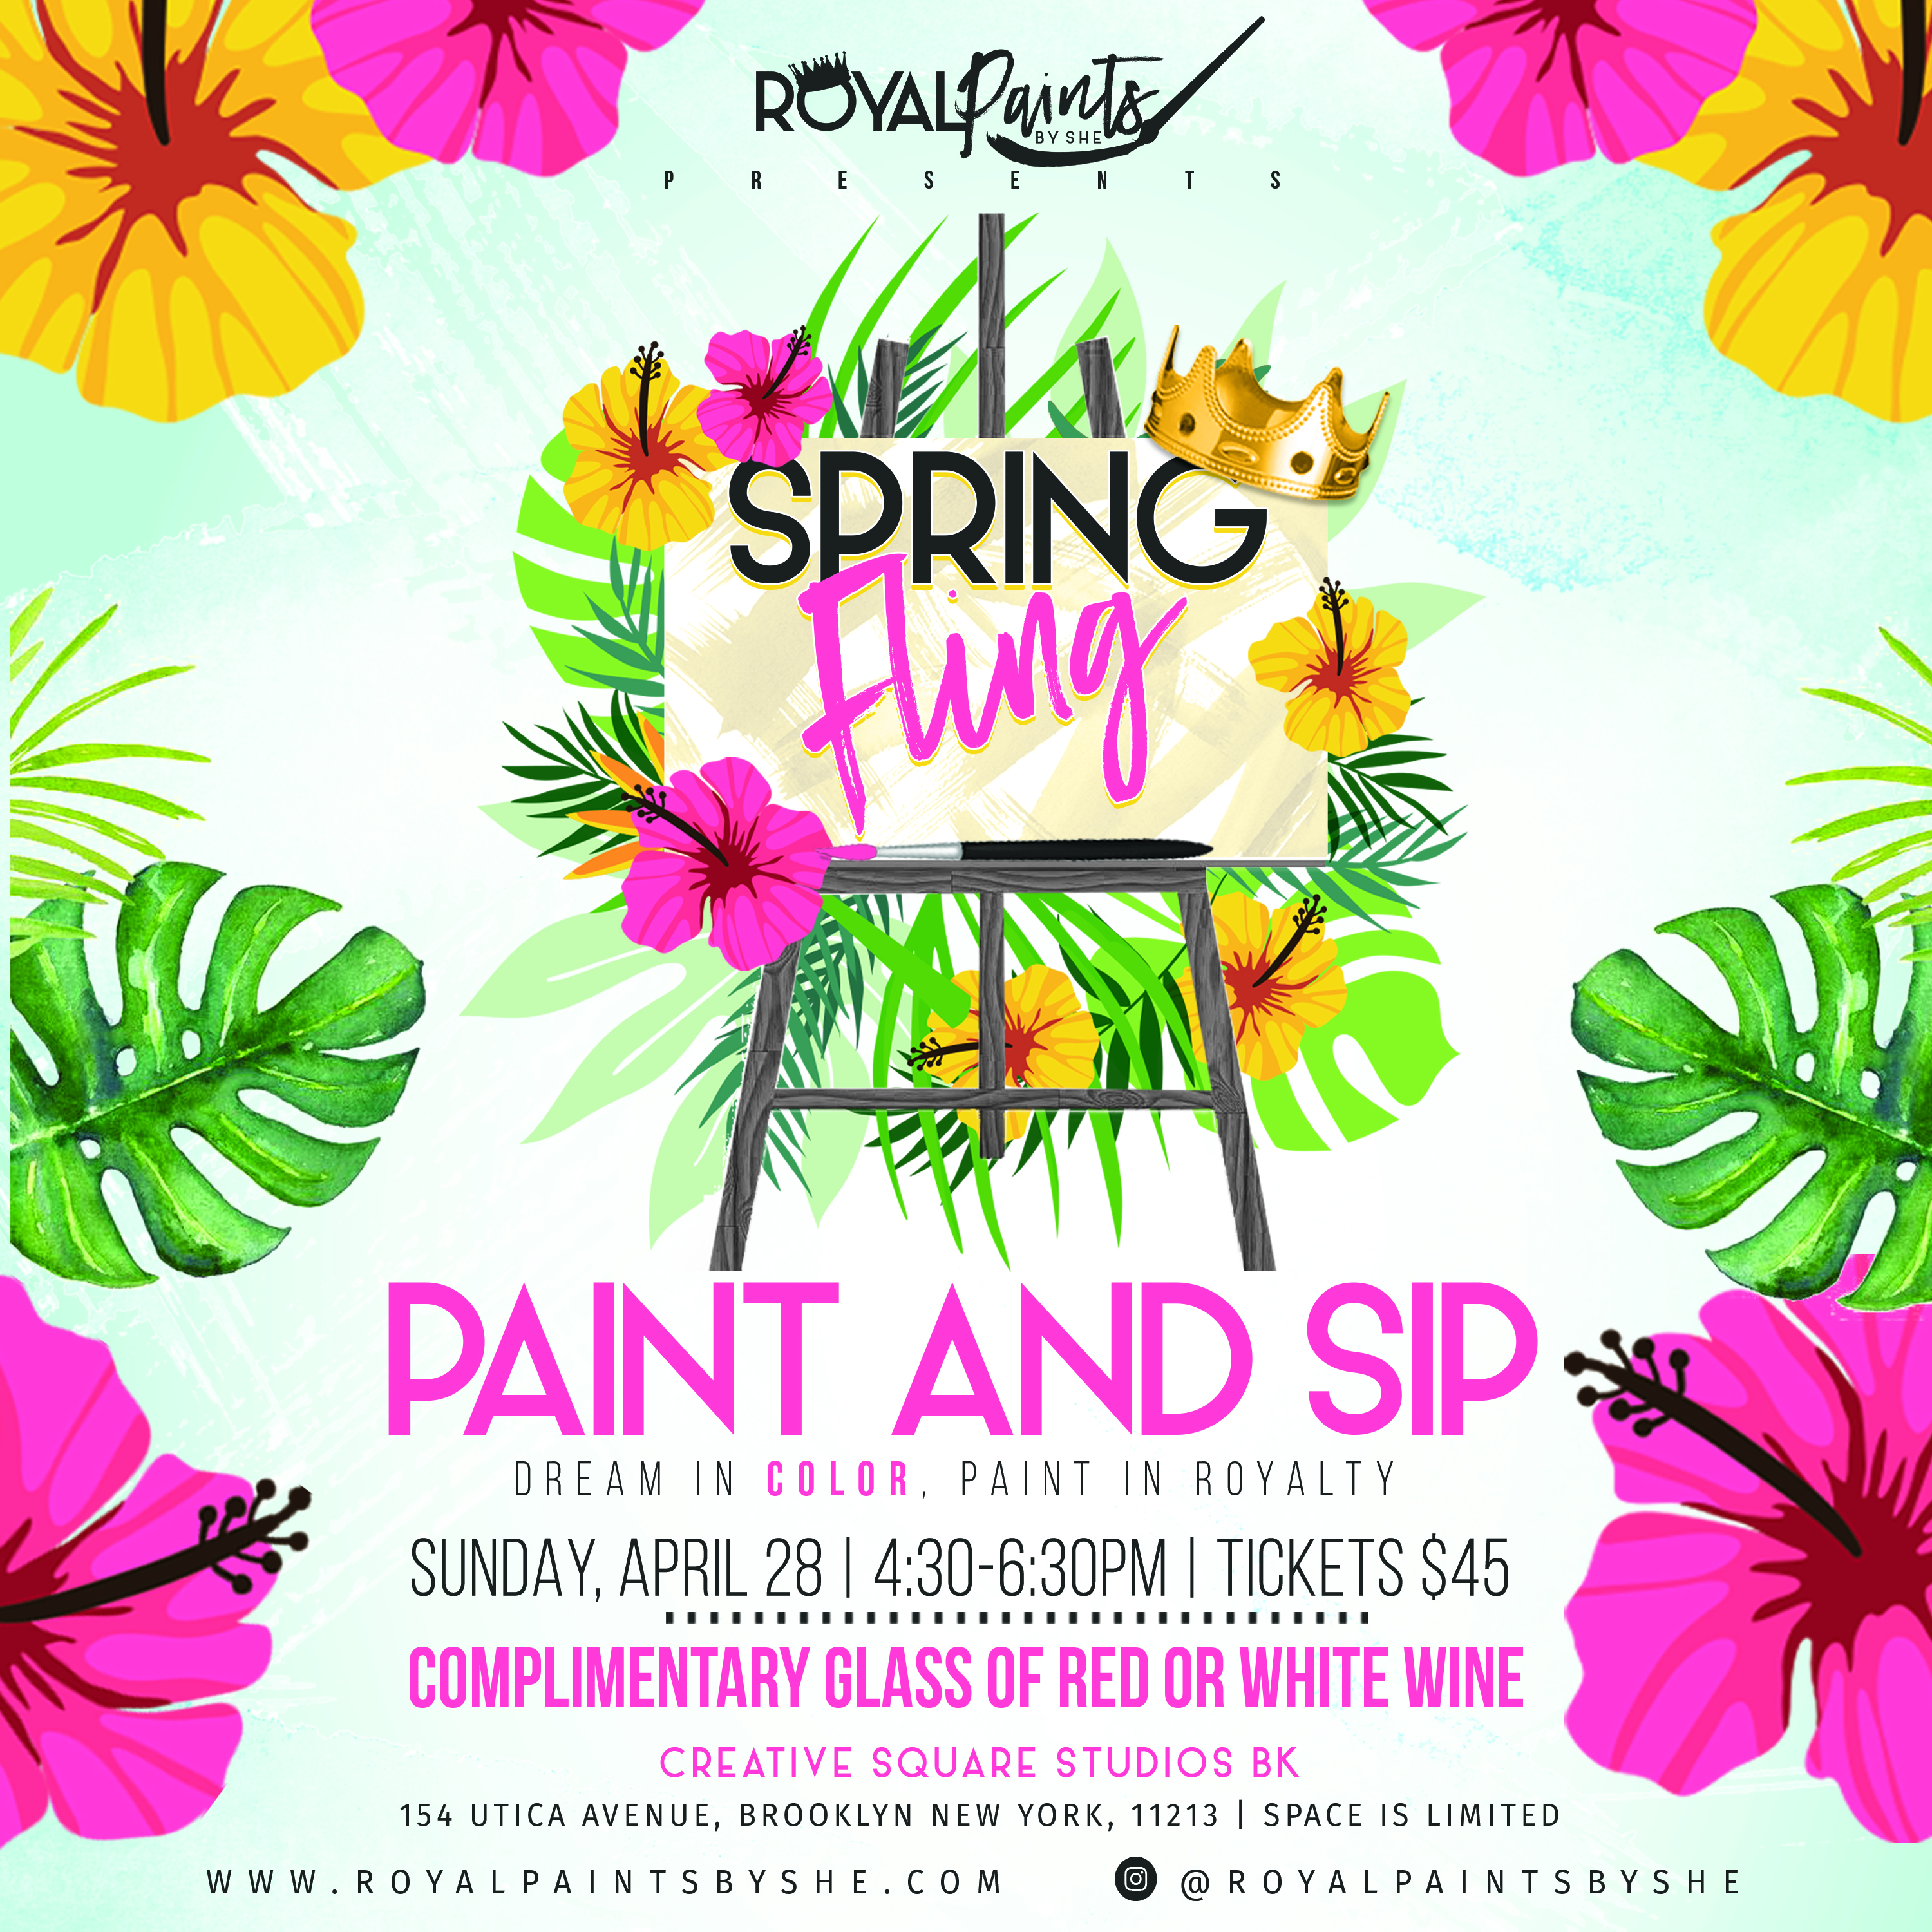 Royal Paints By She Presents Spring Fling Paint And Sip